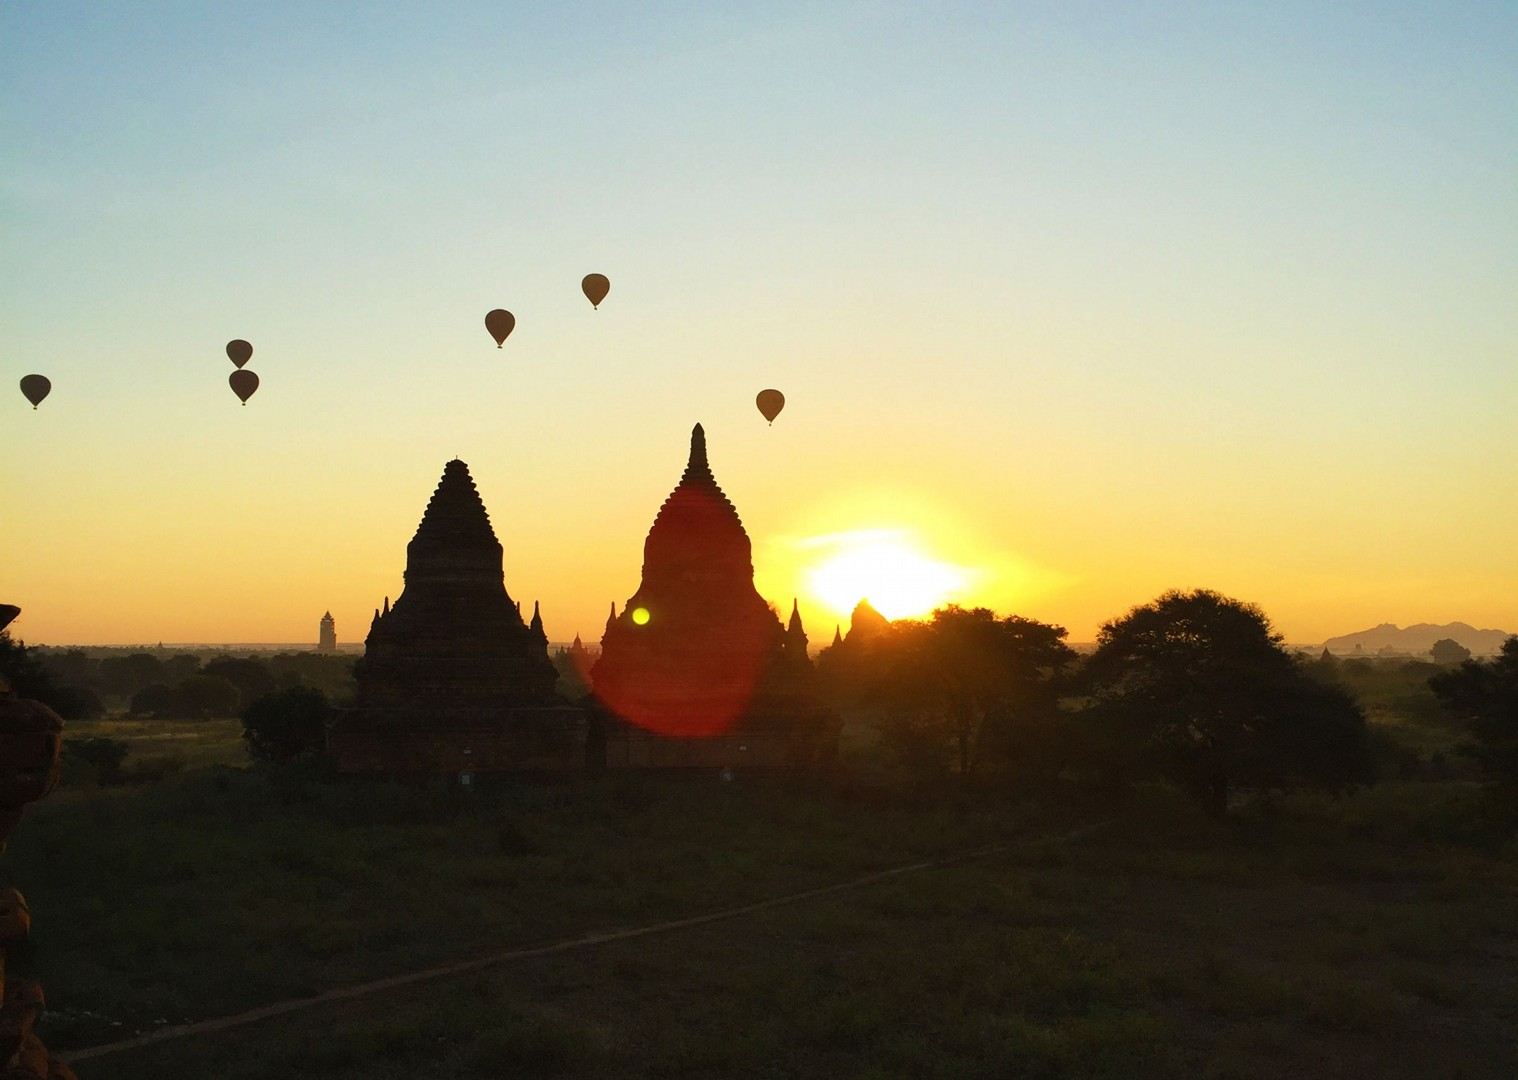 sunset-guided-group-cycling-burma.jpg - Myanmar (Burma) - Bagan and Beyond - Cycling Adventures